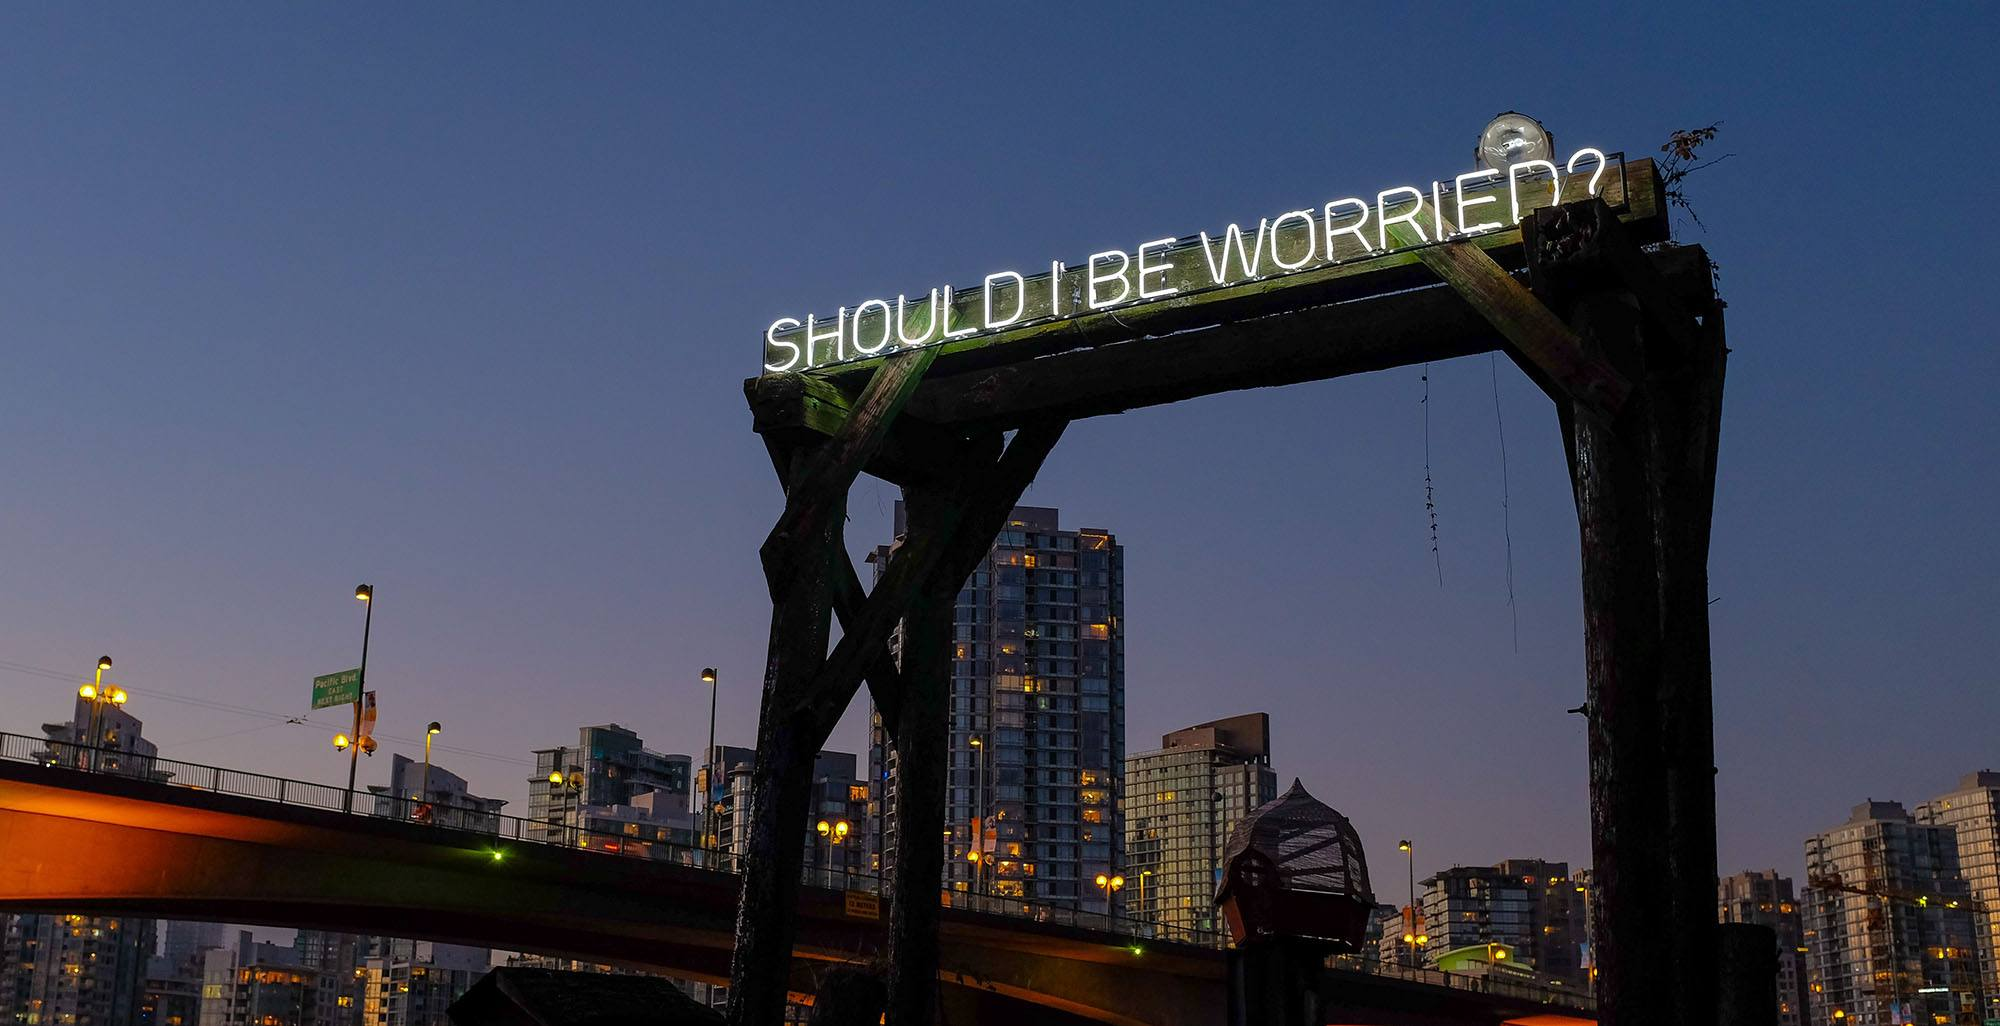 Should i be worried neon sign in false creek vancouver justin langlois